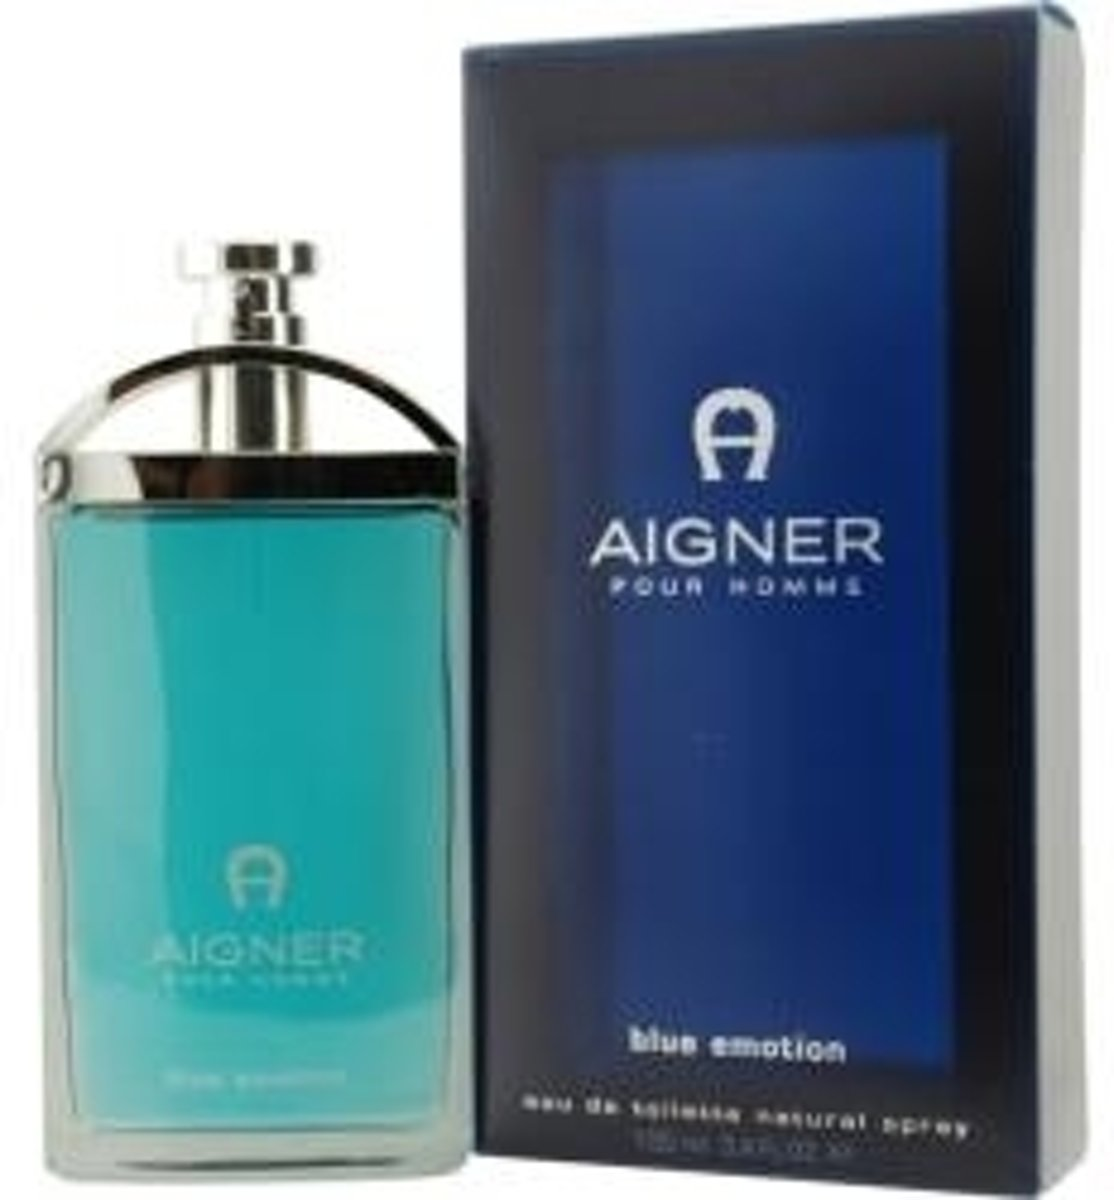 Aigner - Eau de toilette - Blue Emotion homme - 100 ml